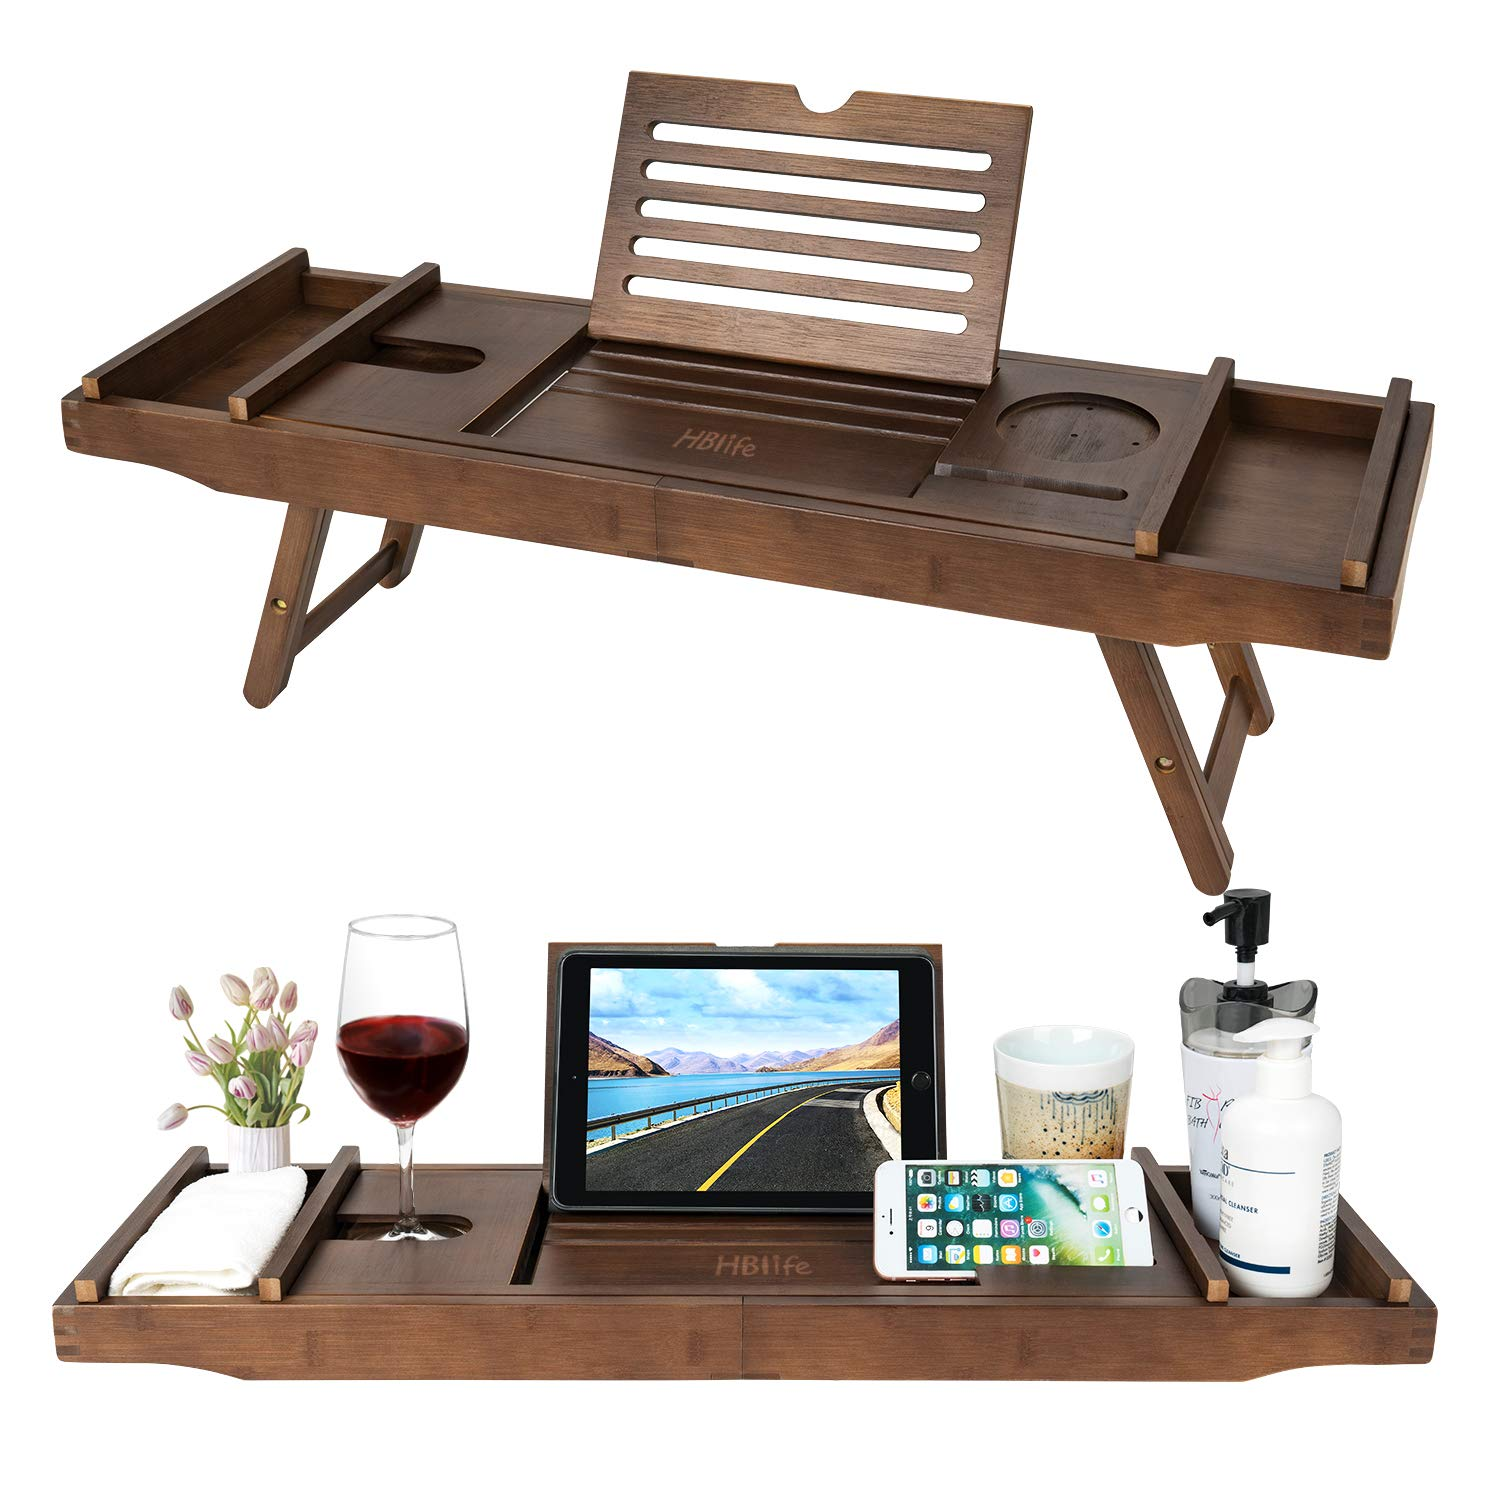 Bamboo Bathtub Caddy Tray with Extending Sides & Laptop Desk with Foldable Legs,Cellphone iPad Tray and Wineglass Holder,Free Soap Holde by HB-life